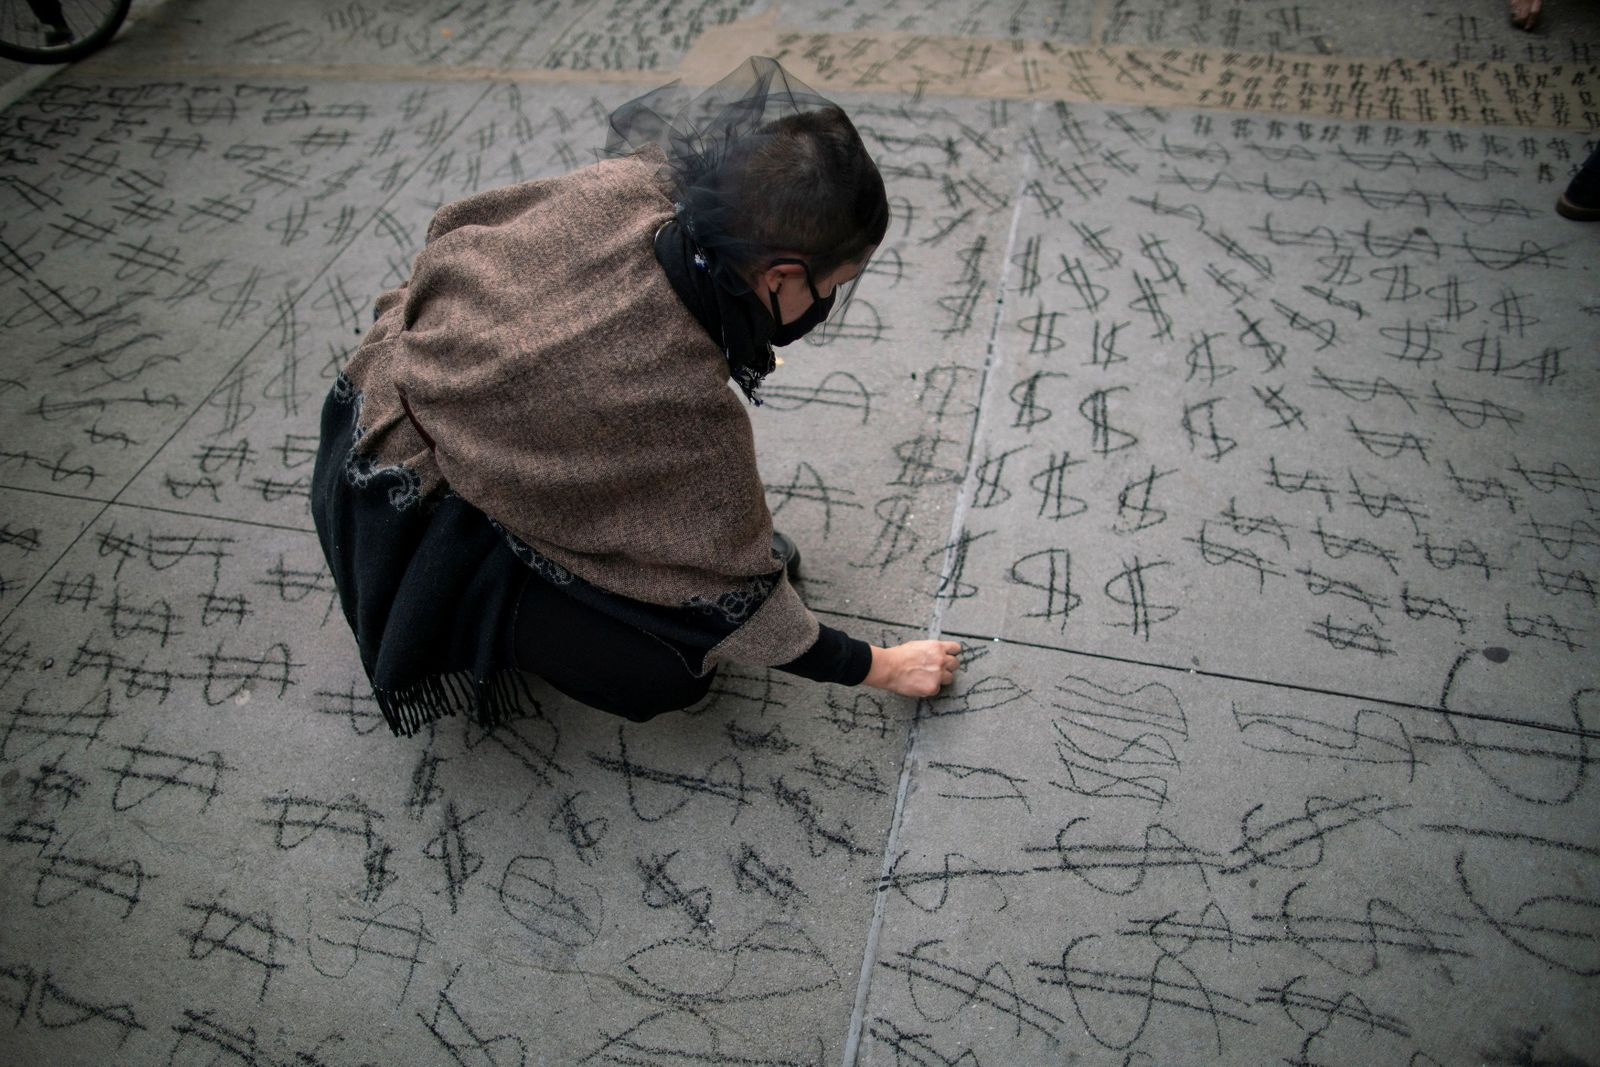 A woman paints the sidewalk with money symbols as people take part in a protest called Make Amazon Pay at the building where CEO Jeff Bezos lives in Manhattan, New York